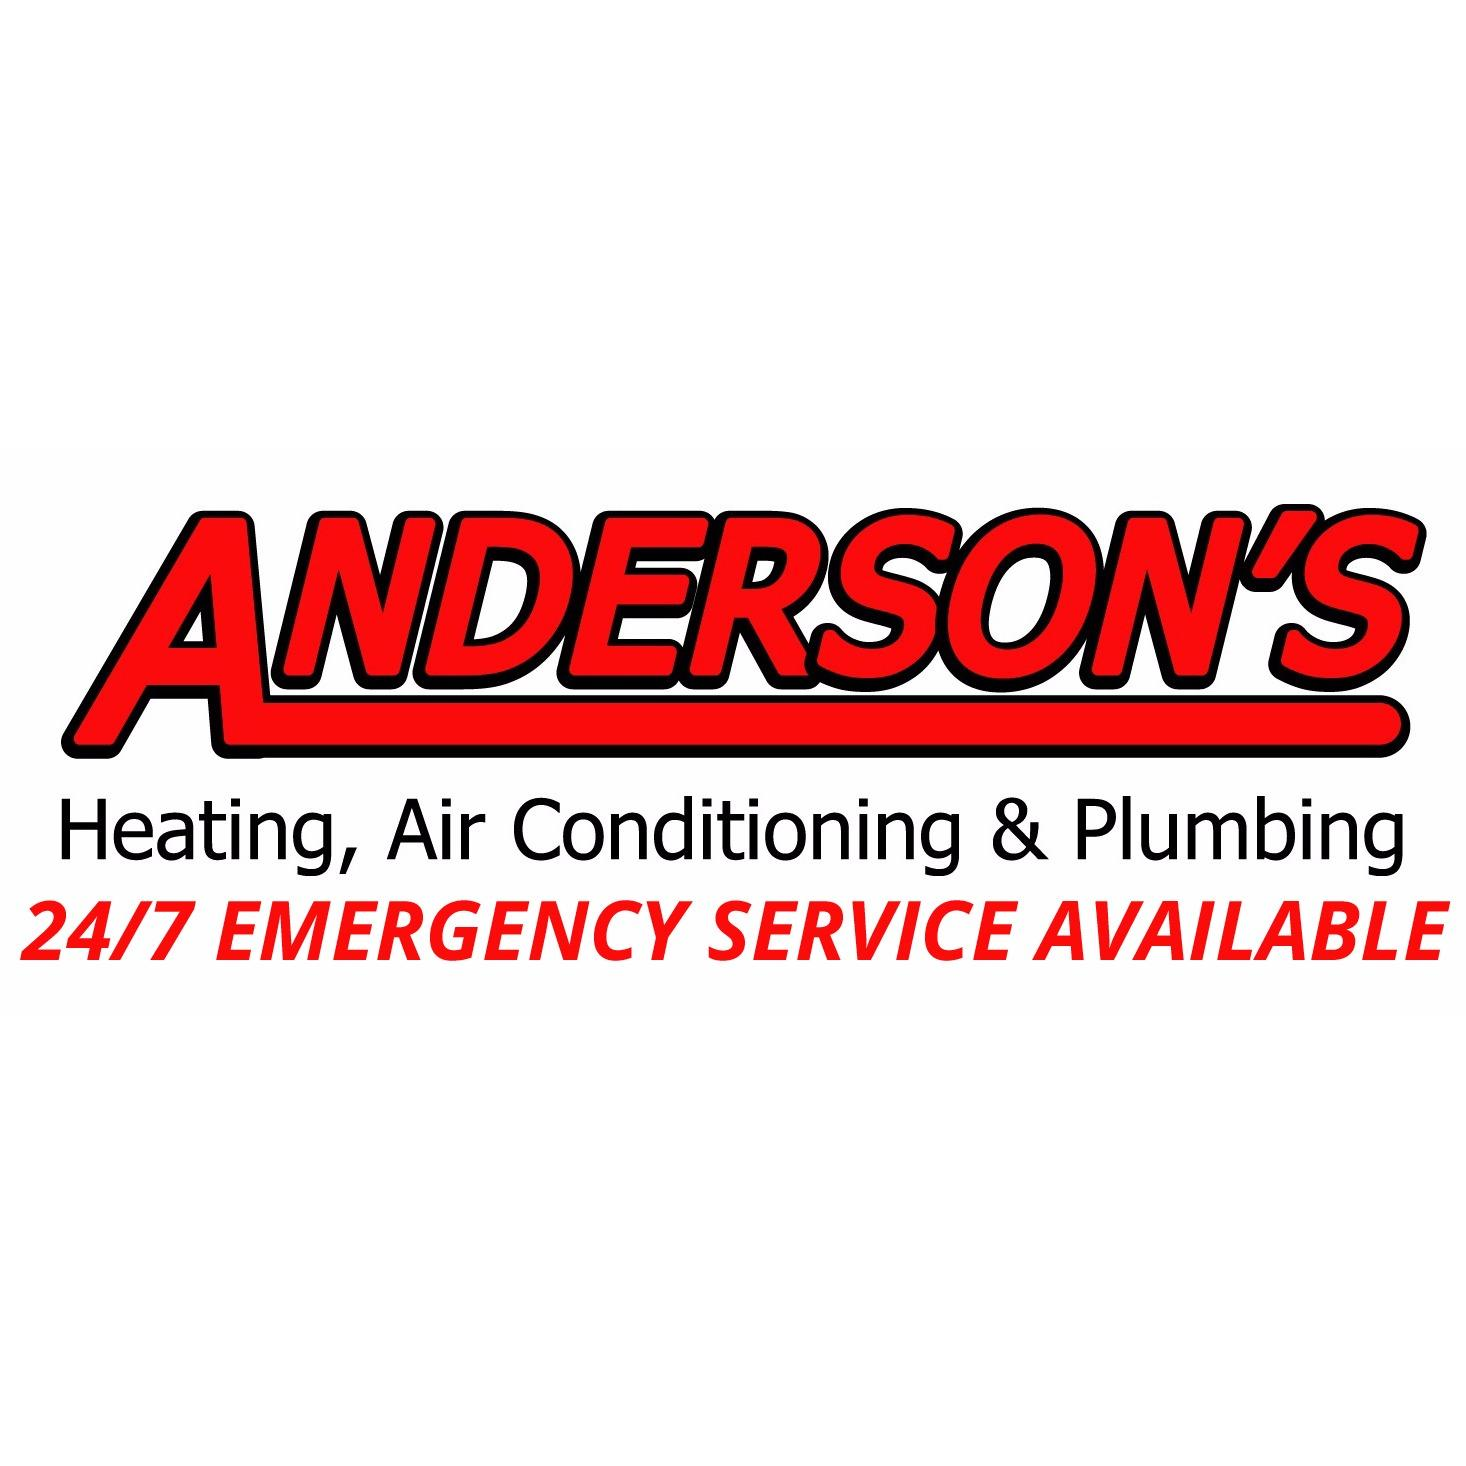 Anderson's Heating, Air Conditioning & Plumbing image 3